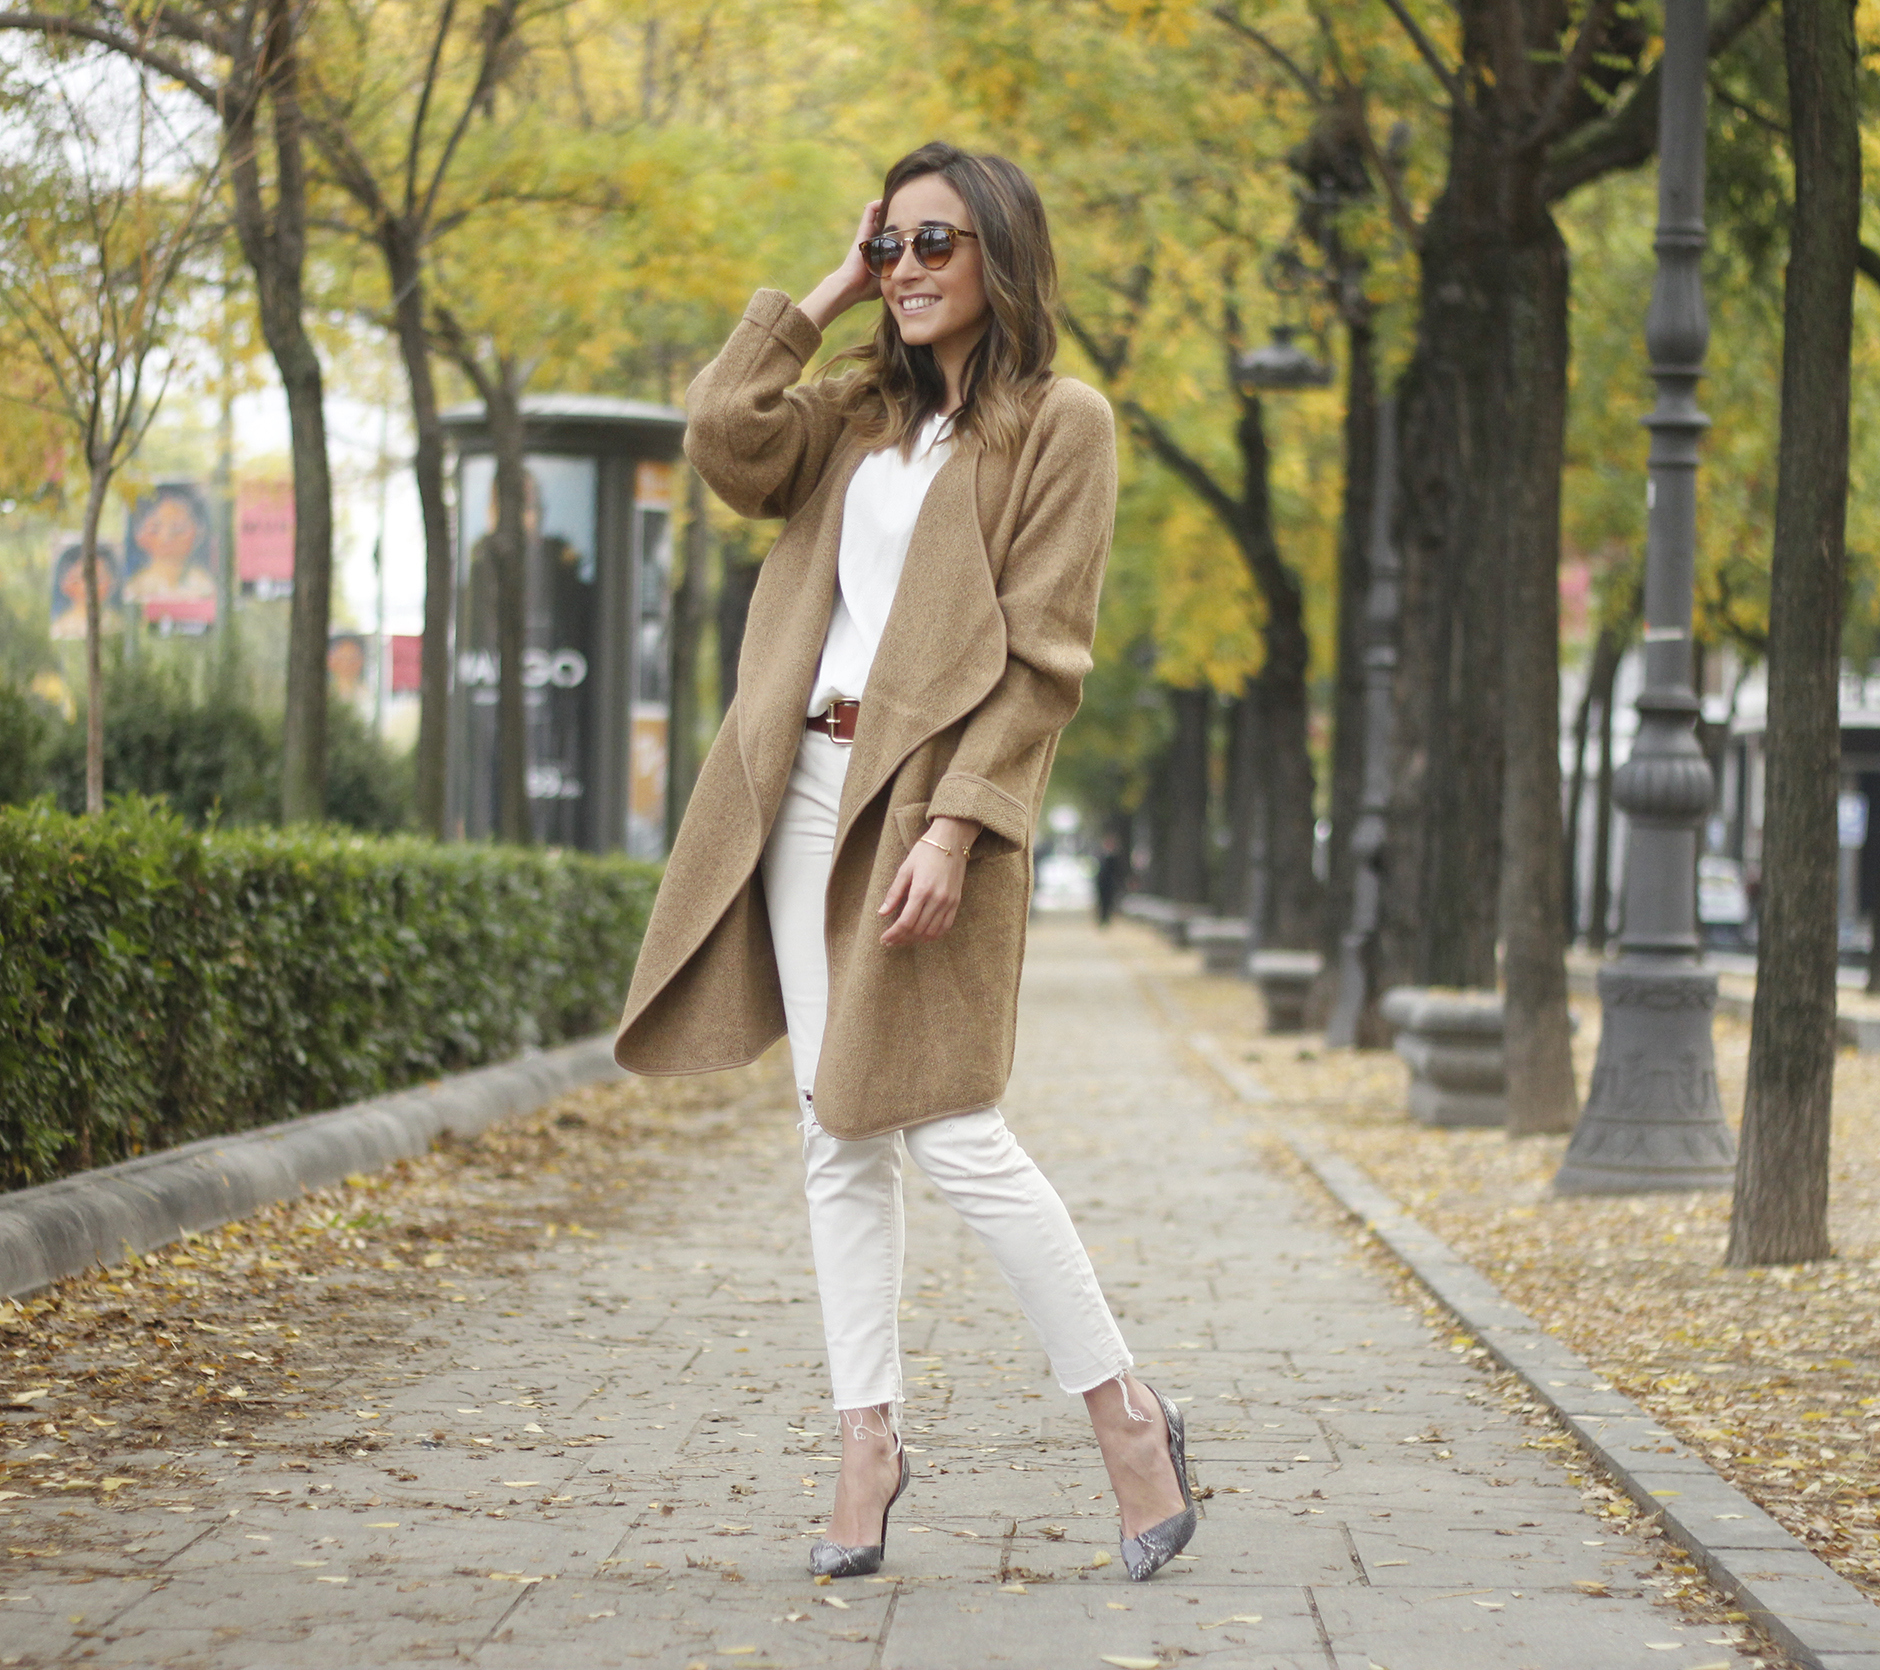 Camel Coat sheinside white outfit heels uterqüe purse outfit05